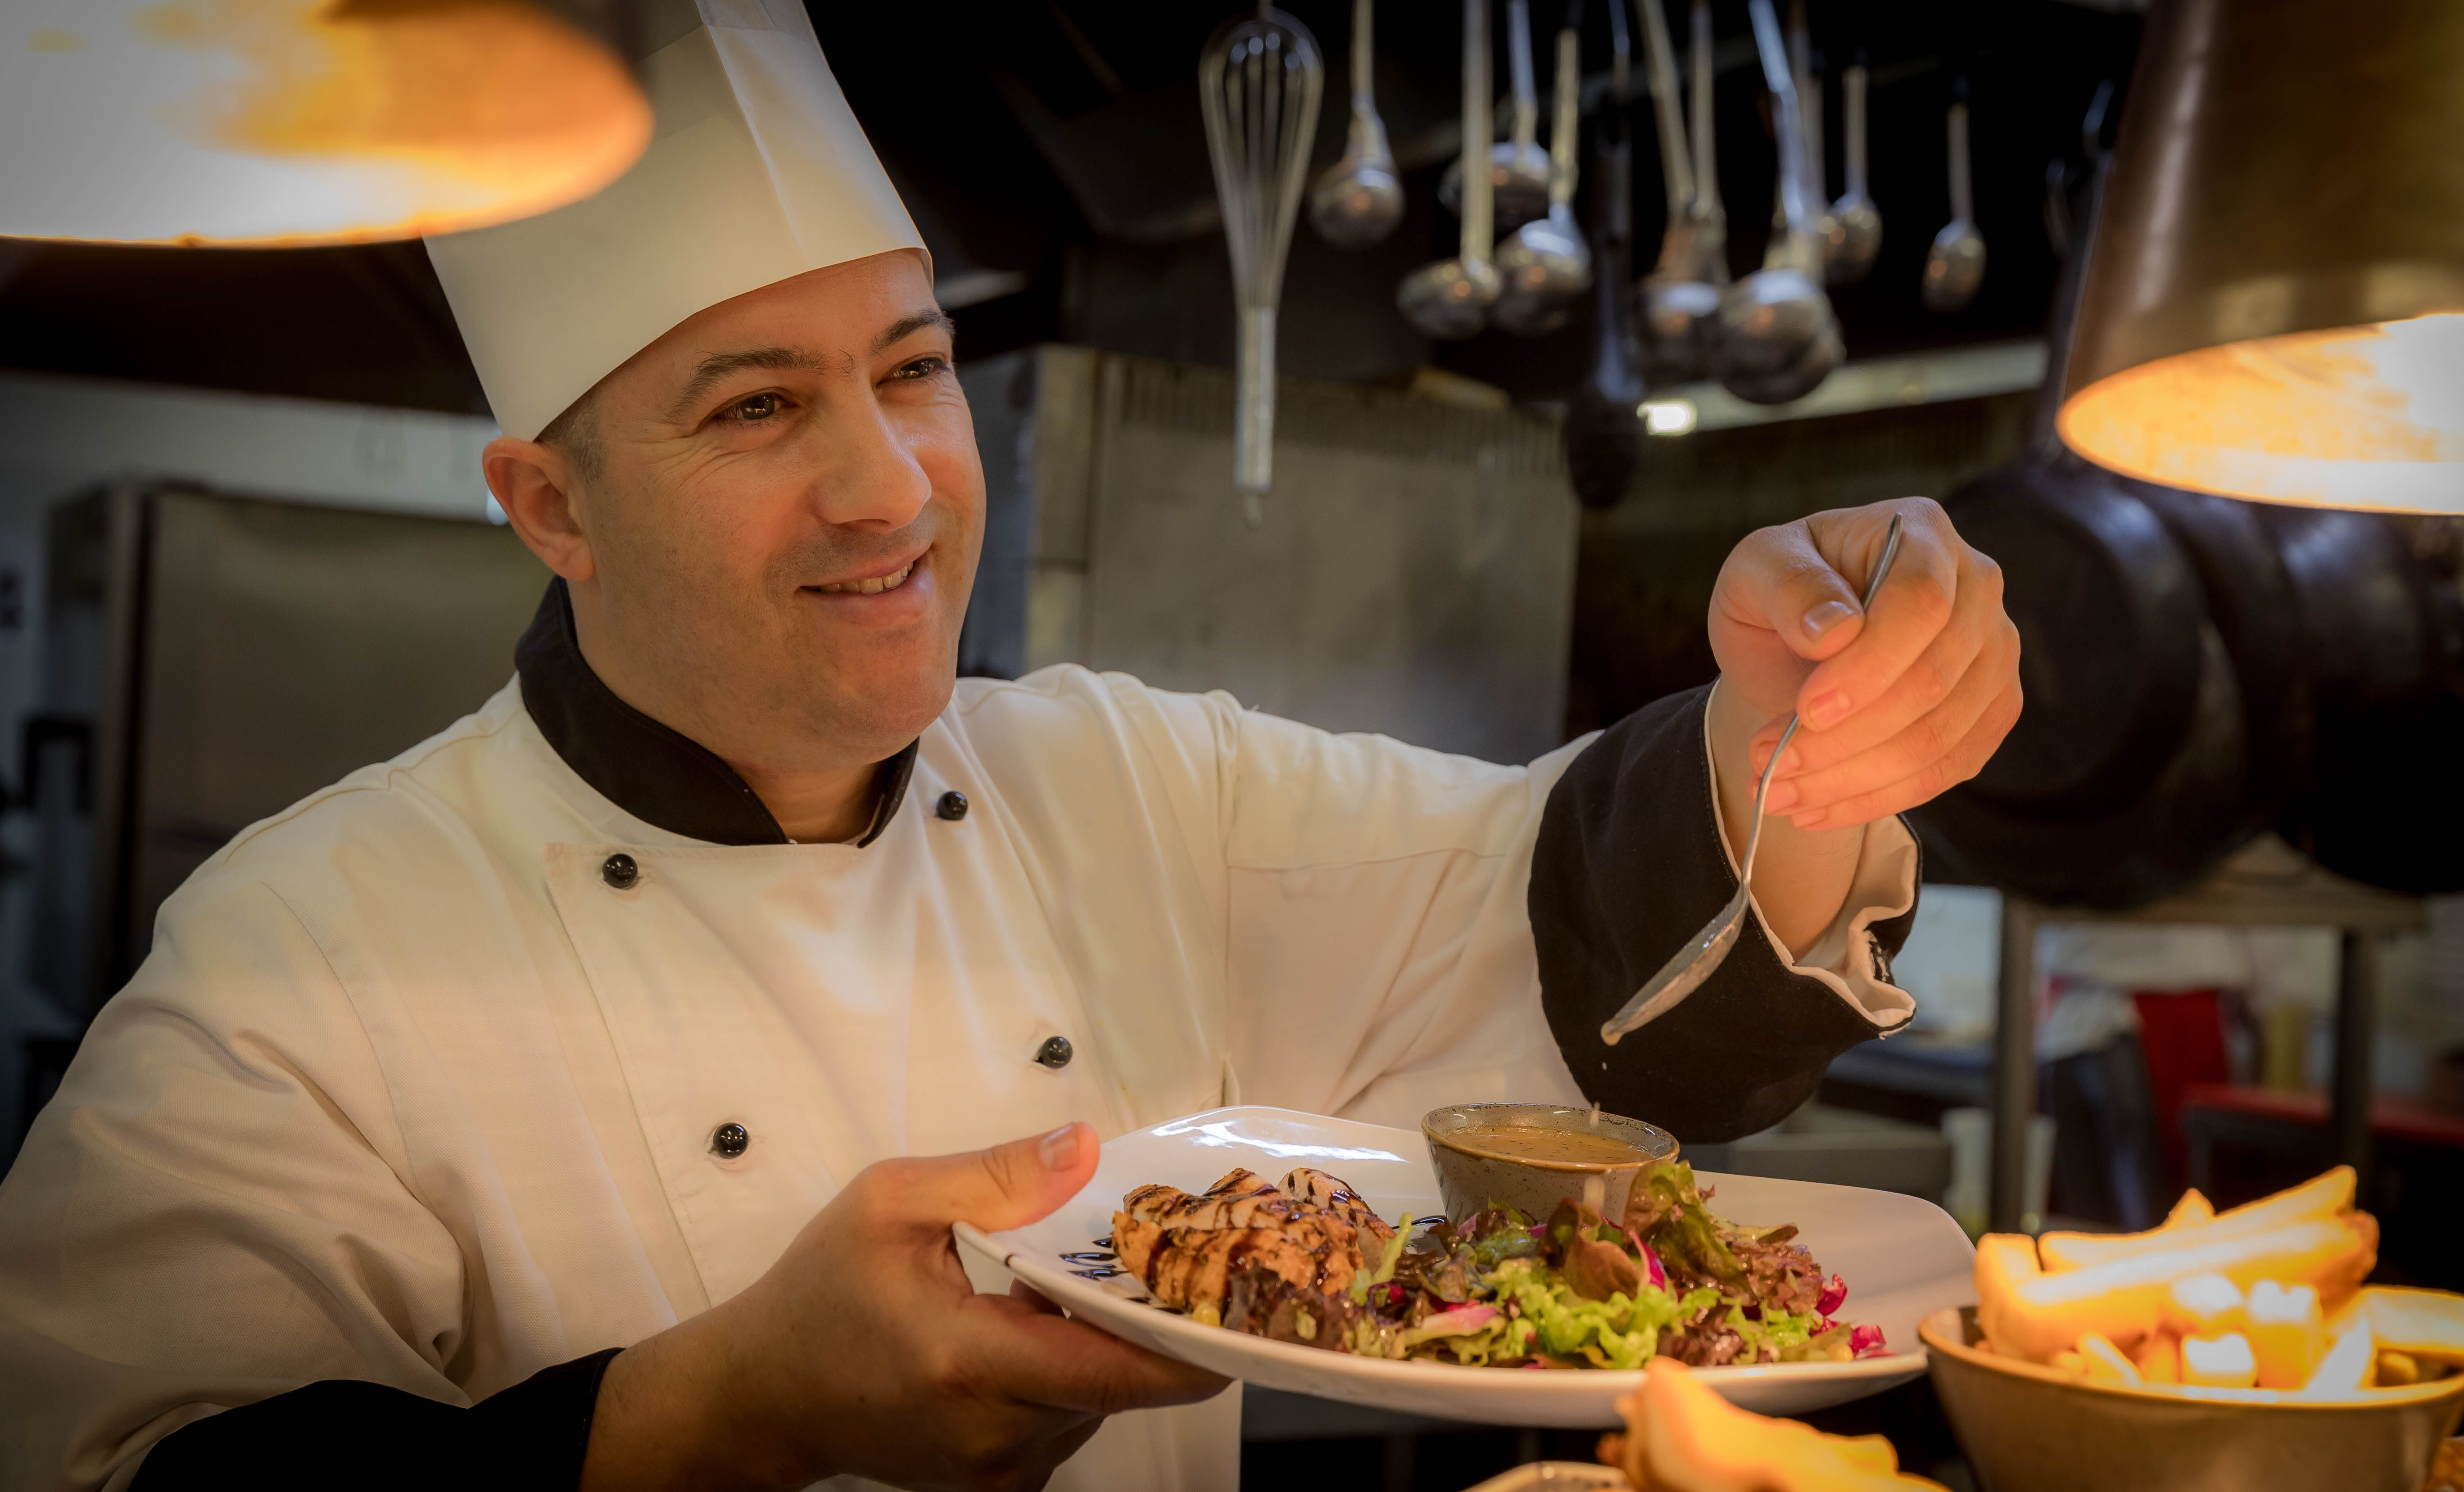 Chef preparing food in Maldron Hotel Limerick restaurant